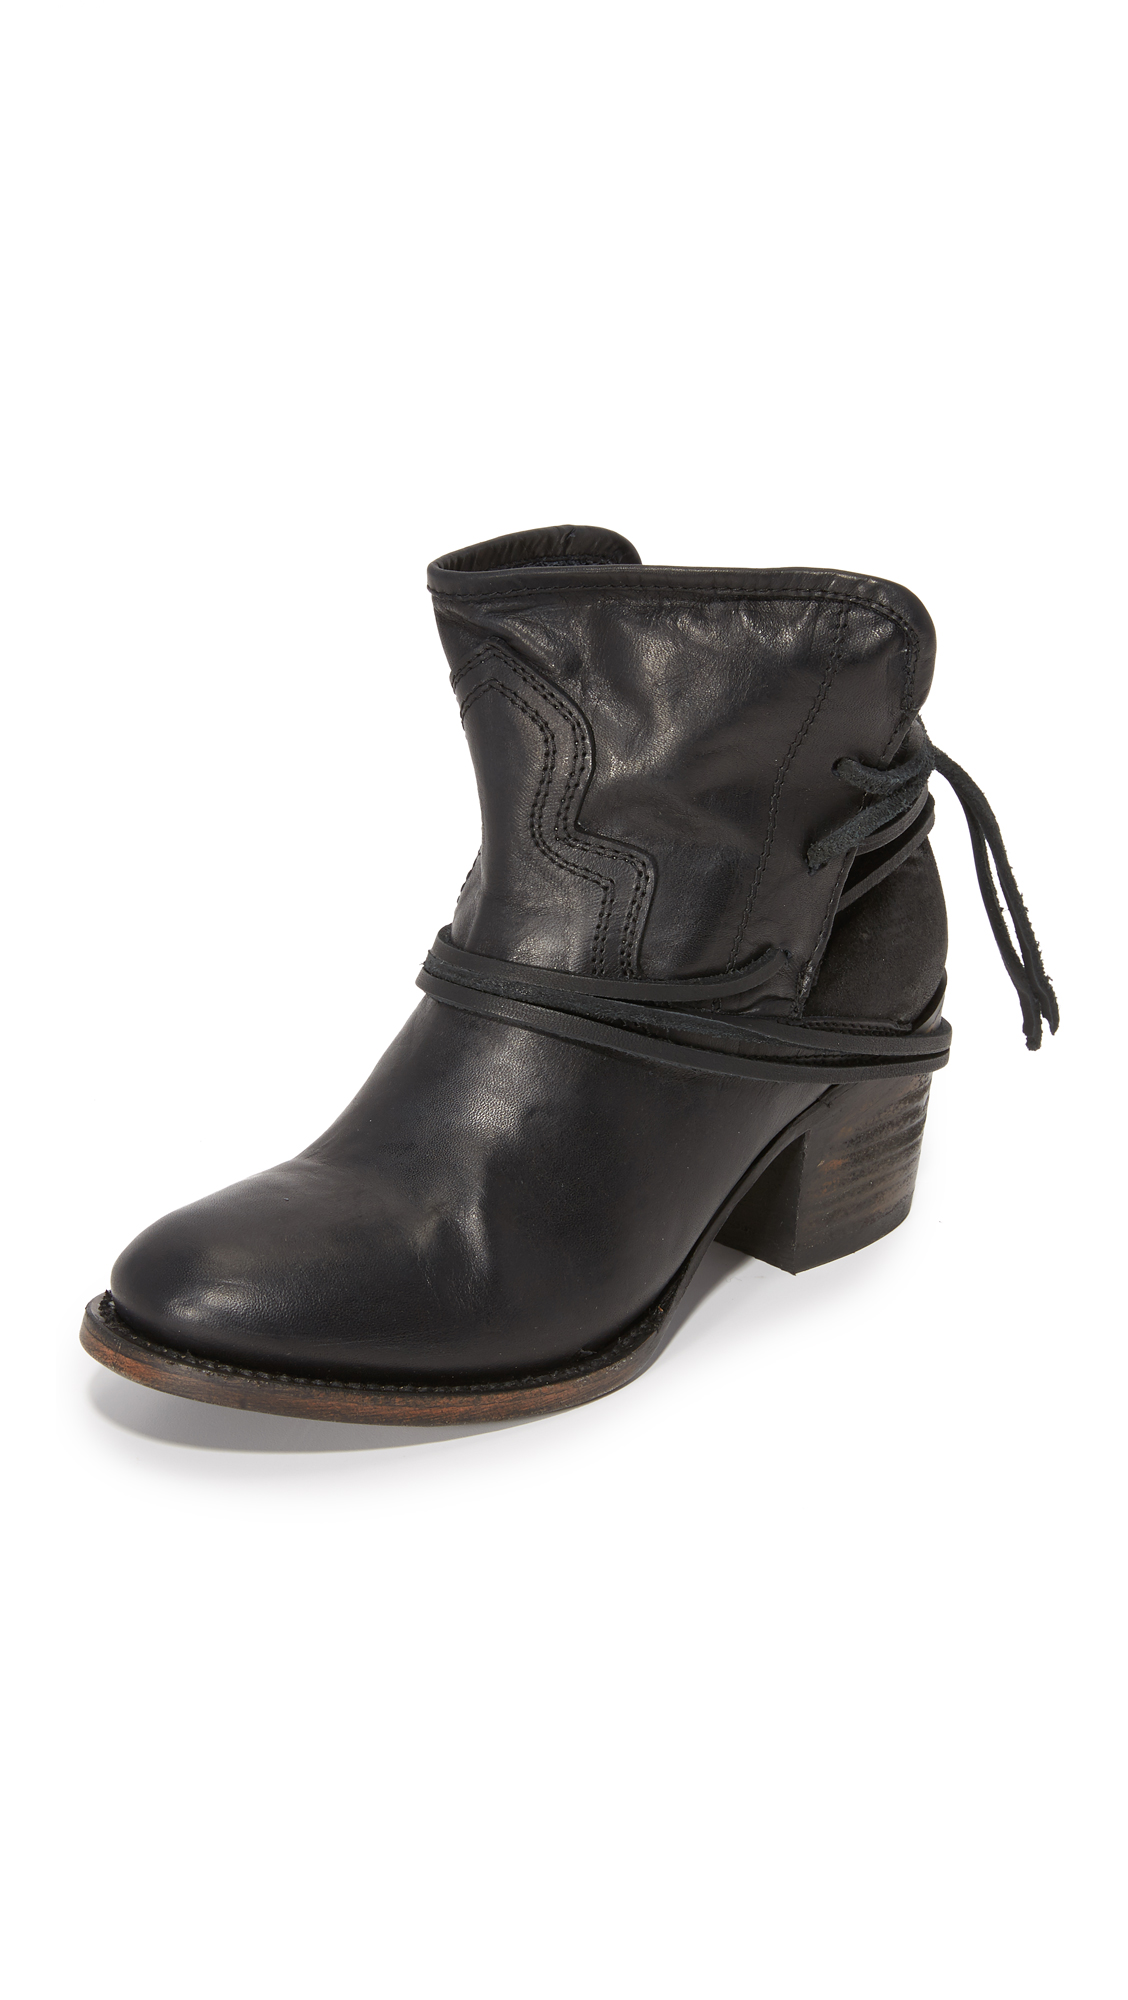 Freebird By Steven Casey Booties - Black